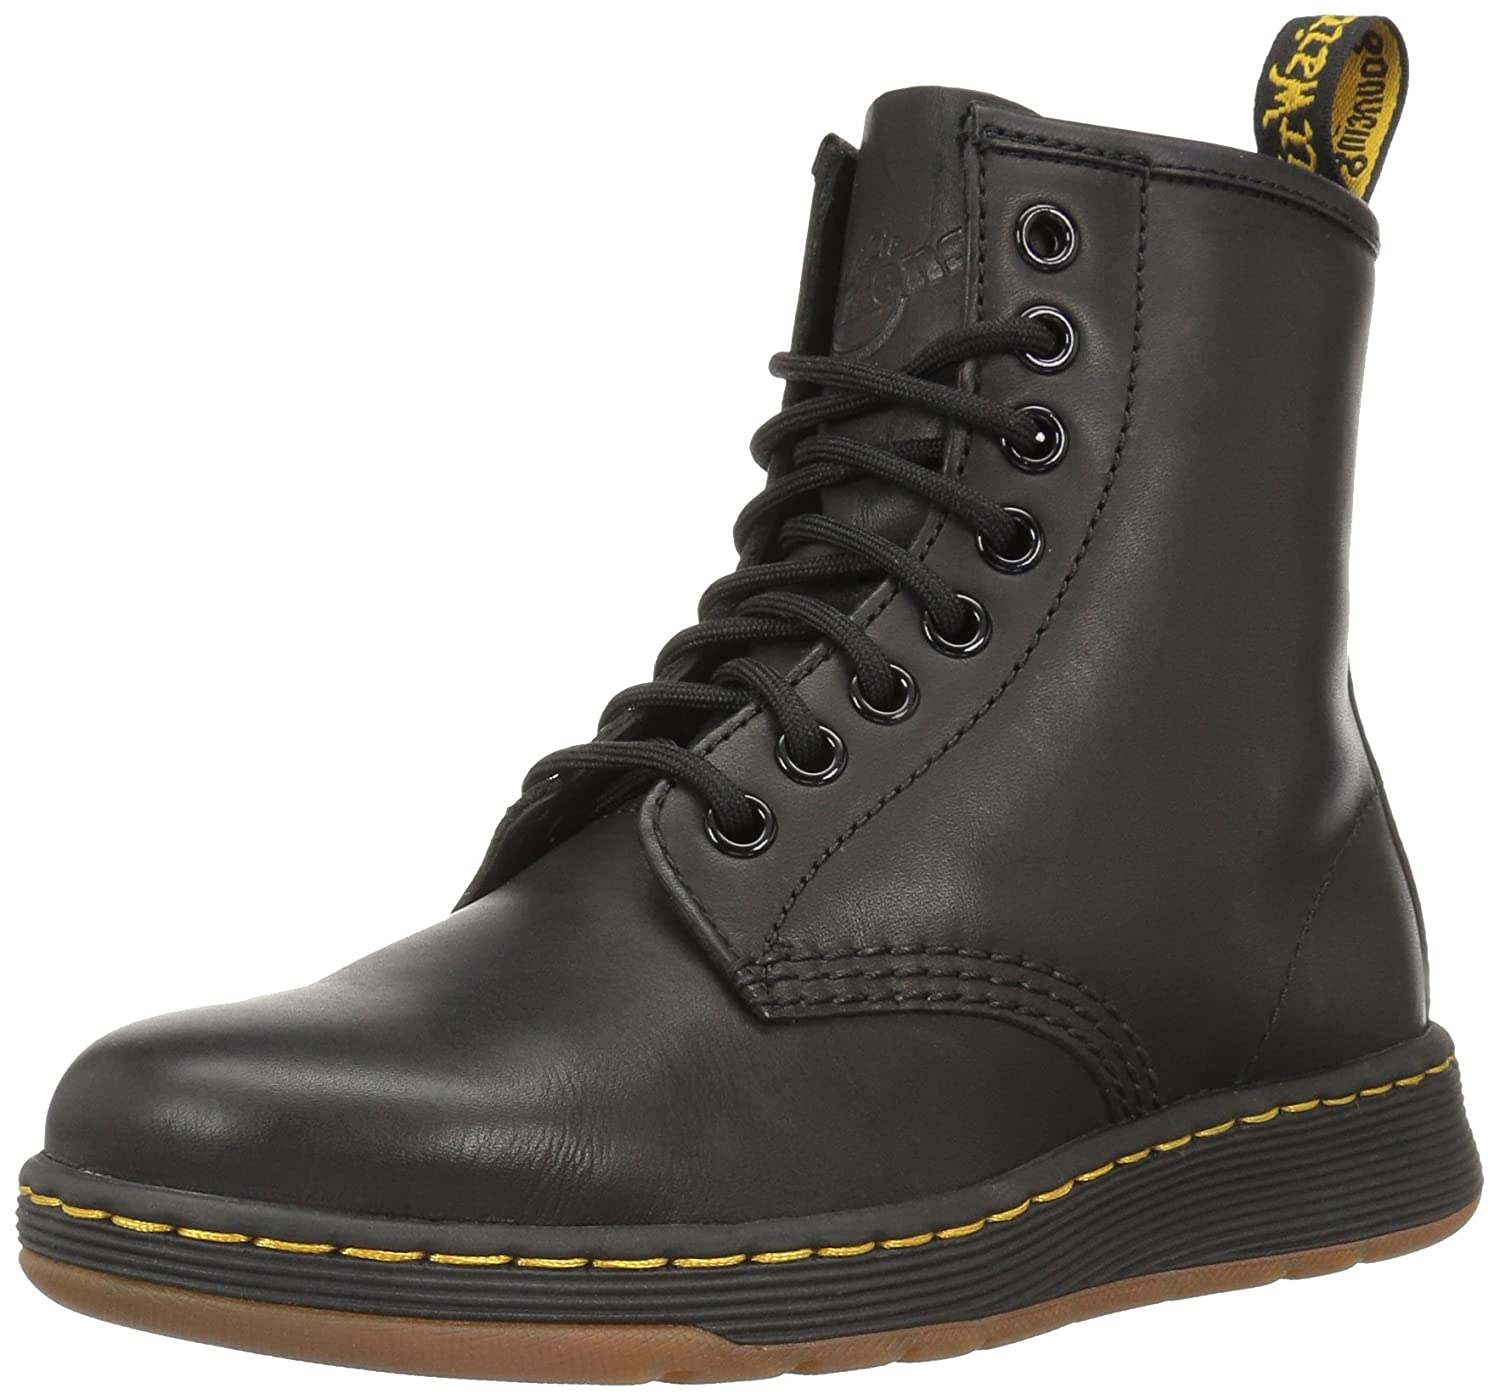 riesige Auswahl an amazon riesiges Inventar Dr.Martens Womens Newton 8 Eyelet Temperley Leather Boots Black